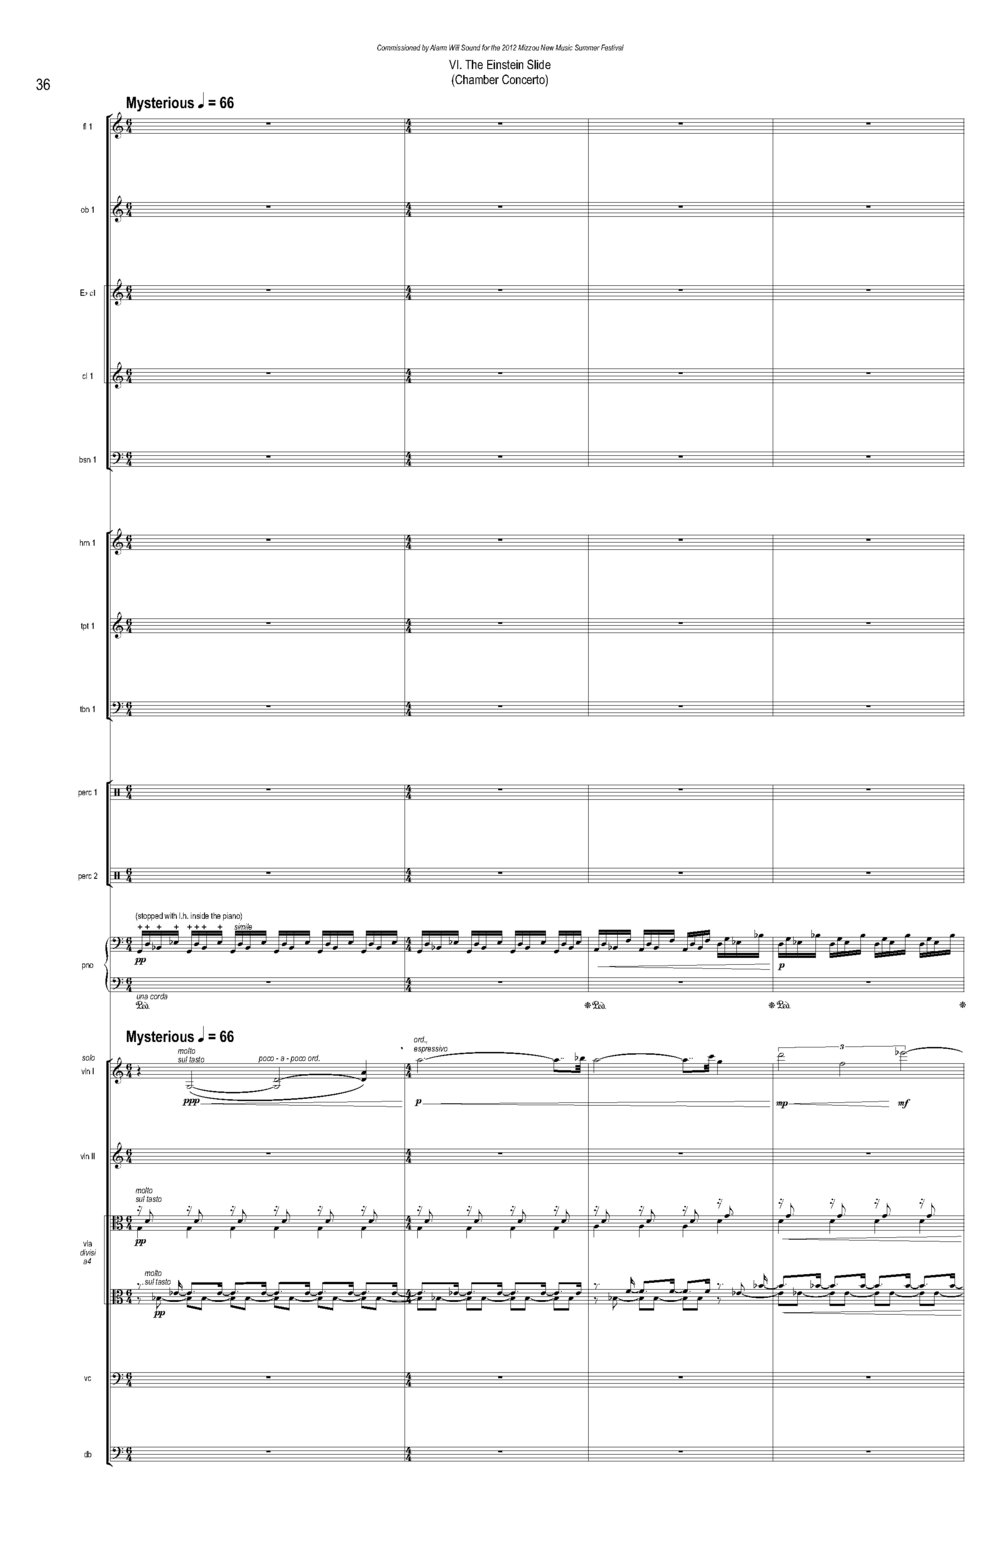 Ciach_Collective Uncommon REVISED_Full Score (Feb 2017)_Seite_42.jpg